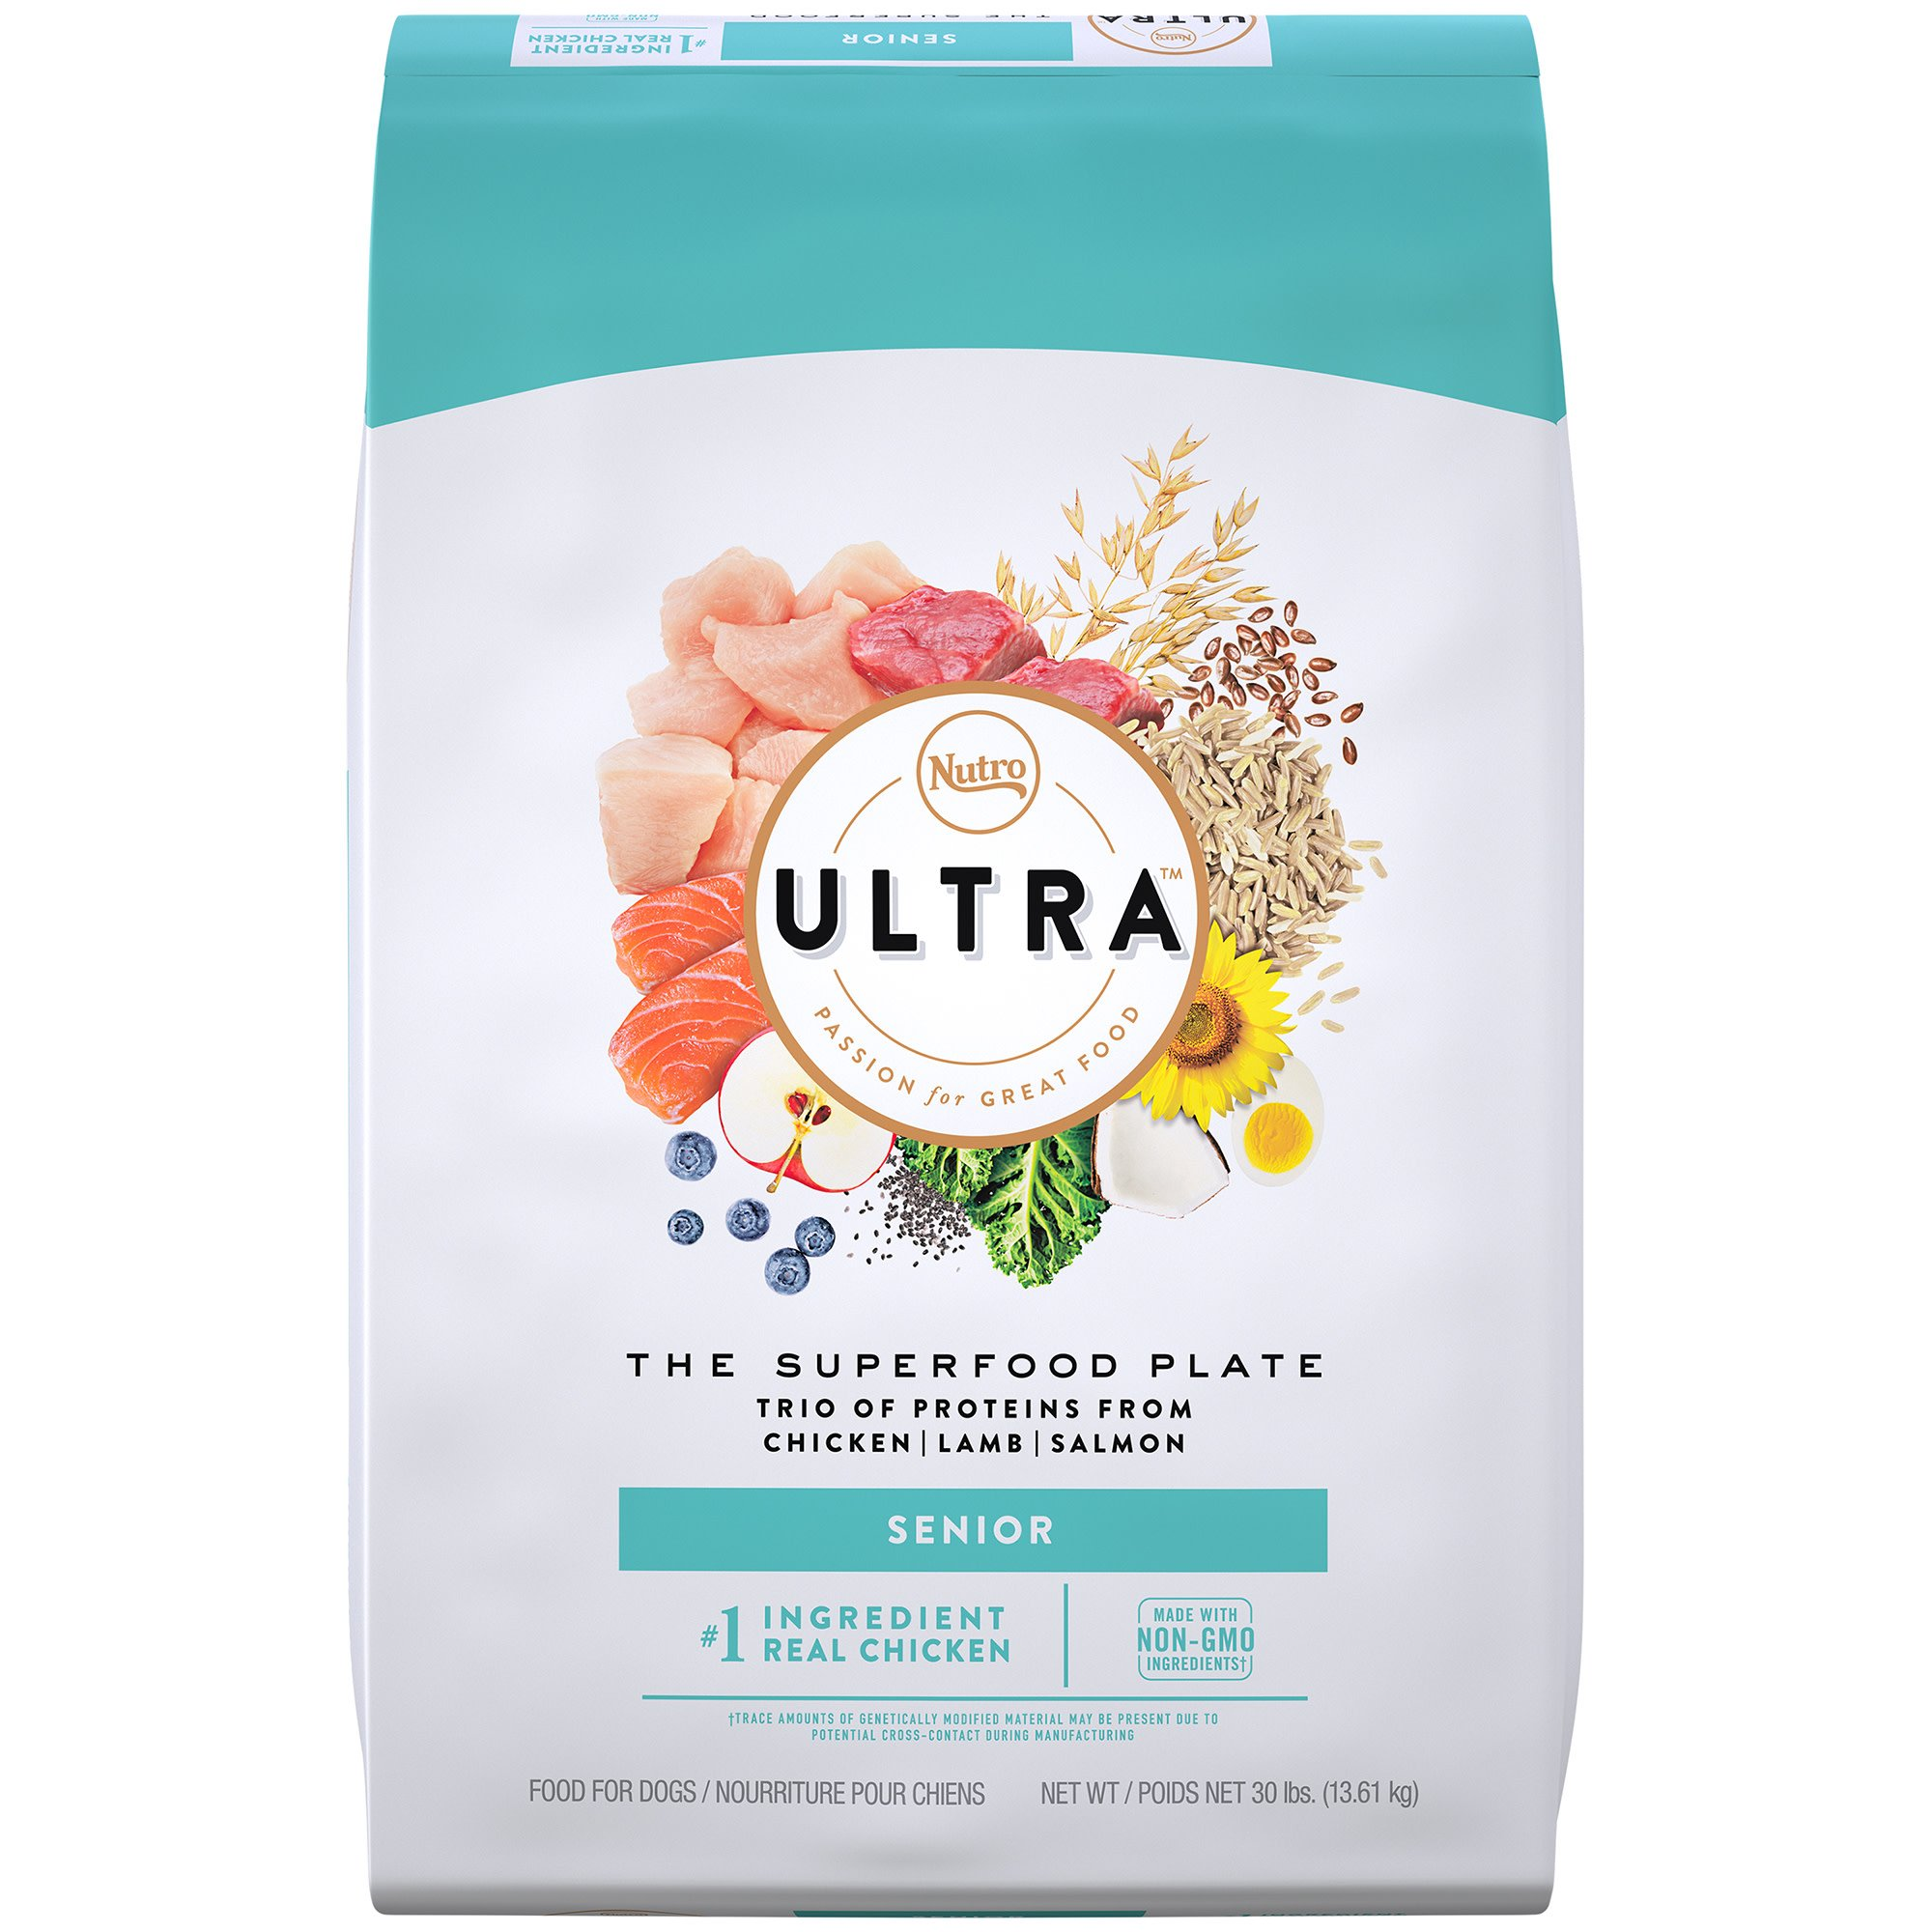 Nutro Ultra Dog Food >> NUTRO ULTRA Senior Dry Dog Food | Petco